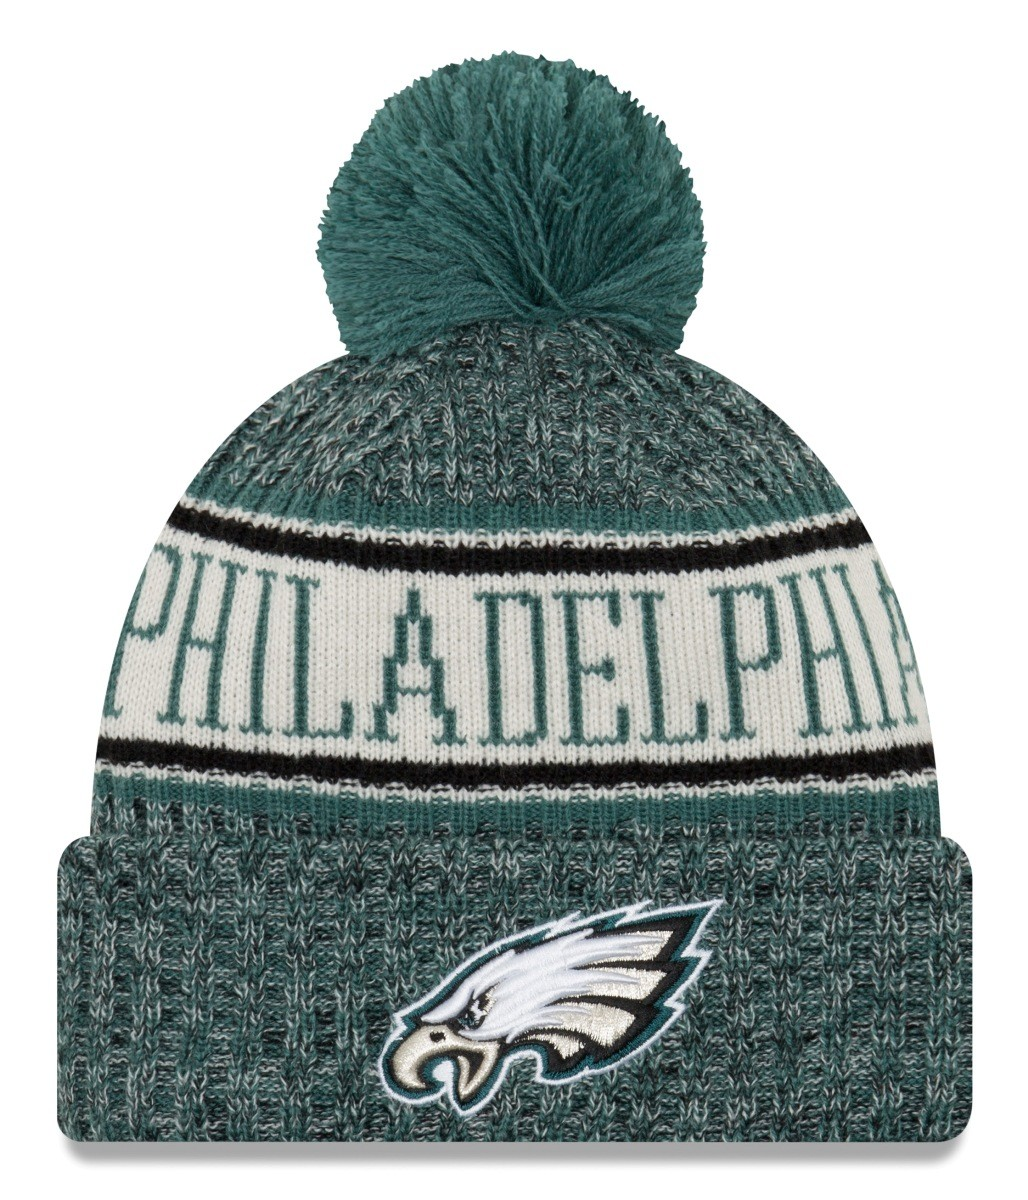 Philadelphia Eagles New Era 2018 NFL Sideline On Field Sport Knit Hat  Green